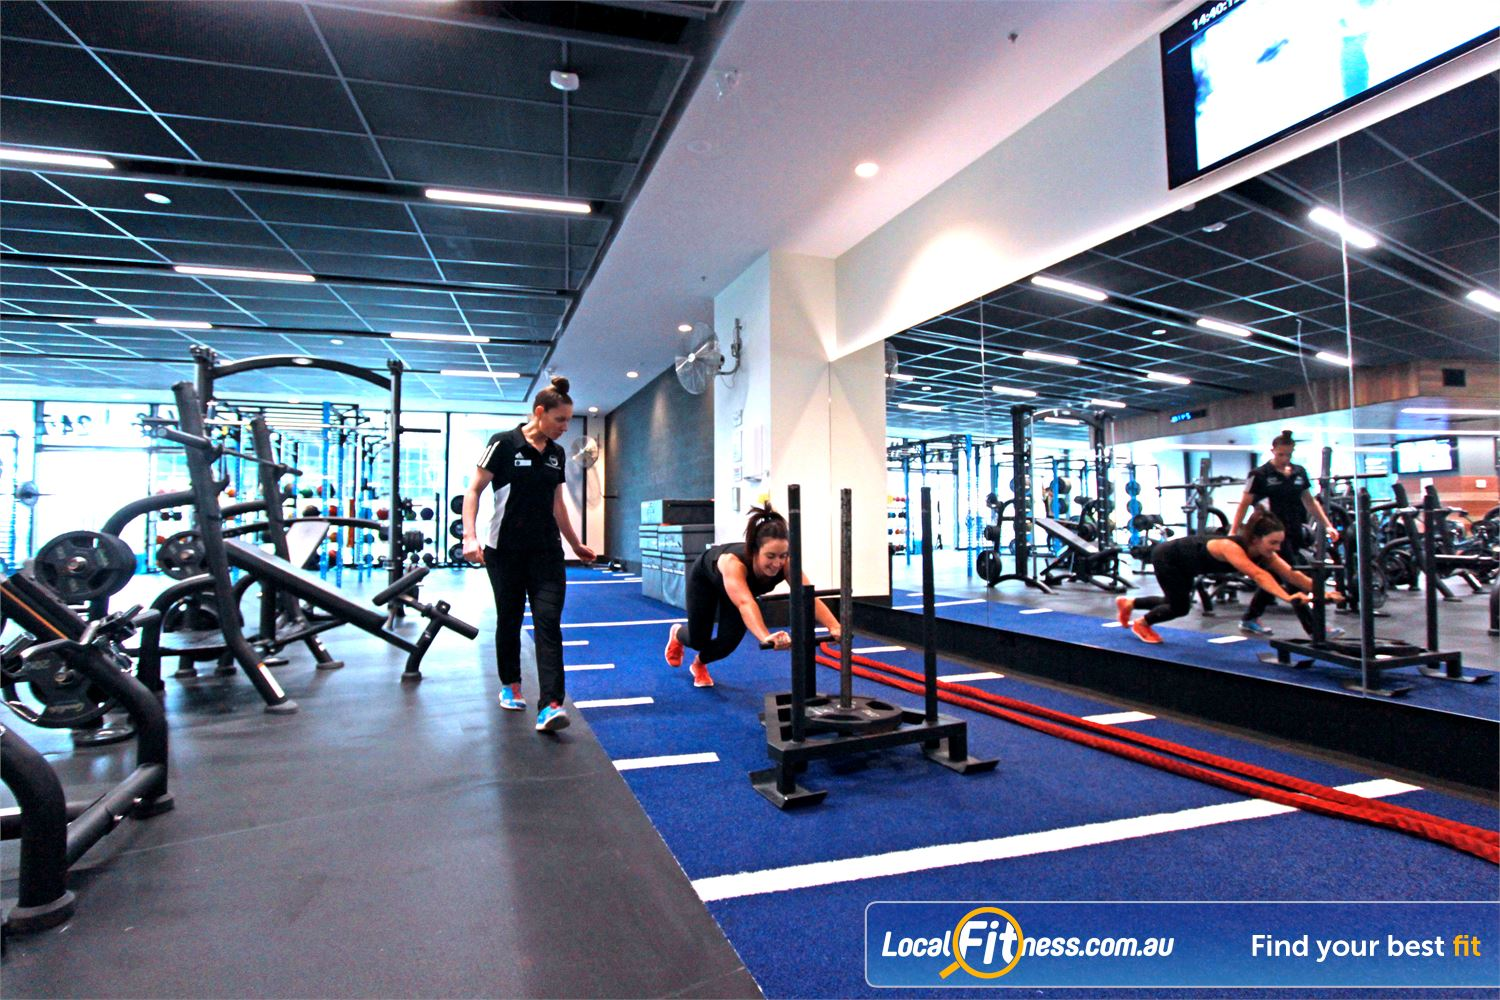 Goodlife Health Clubs Docklands Docklands personal trainers can tailor a functional training program to suit you.